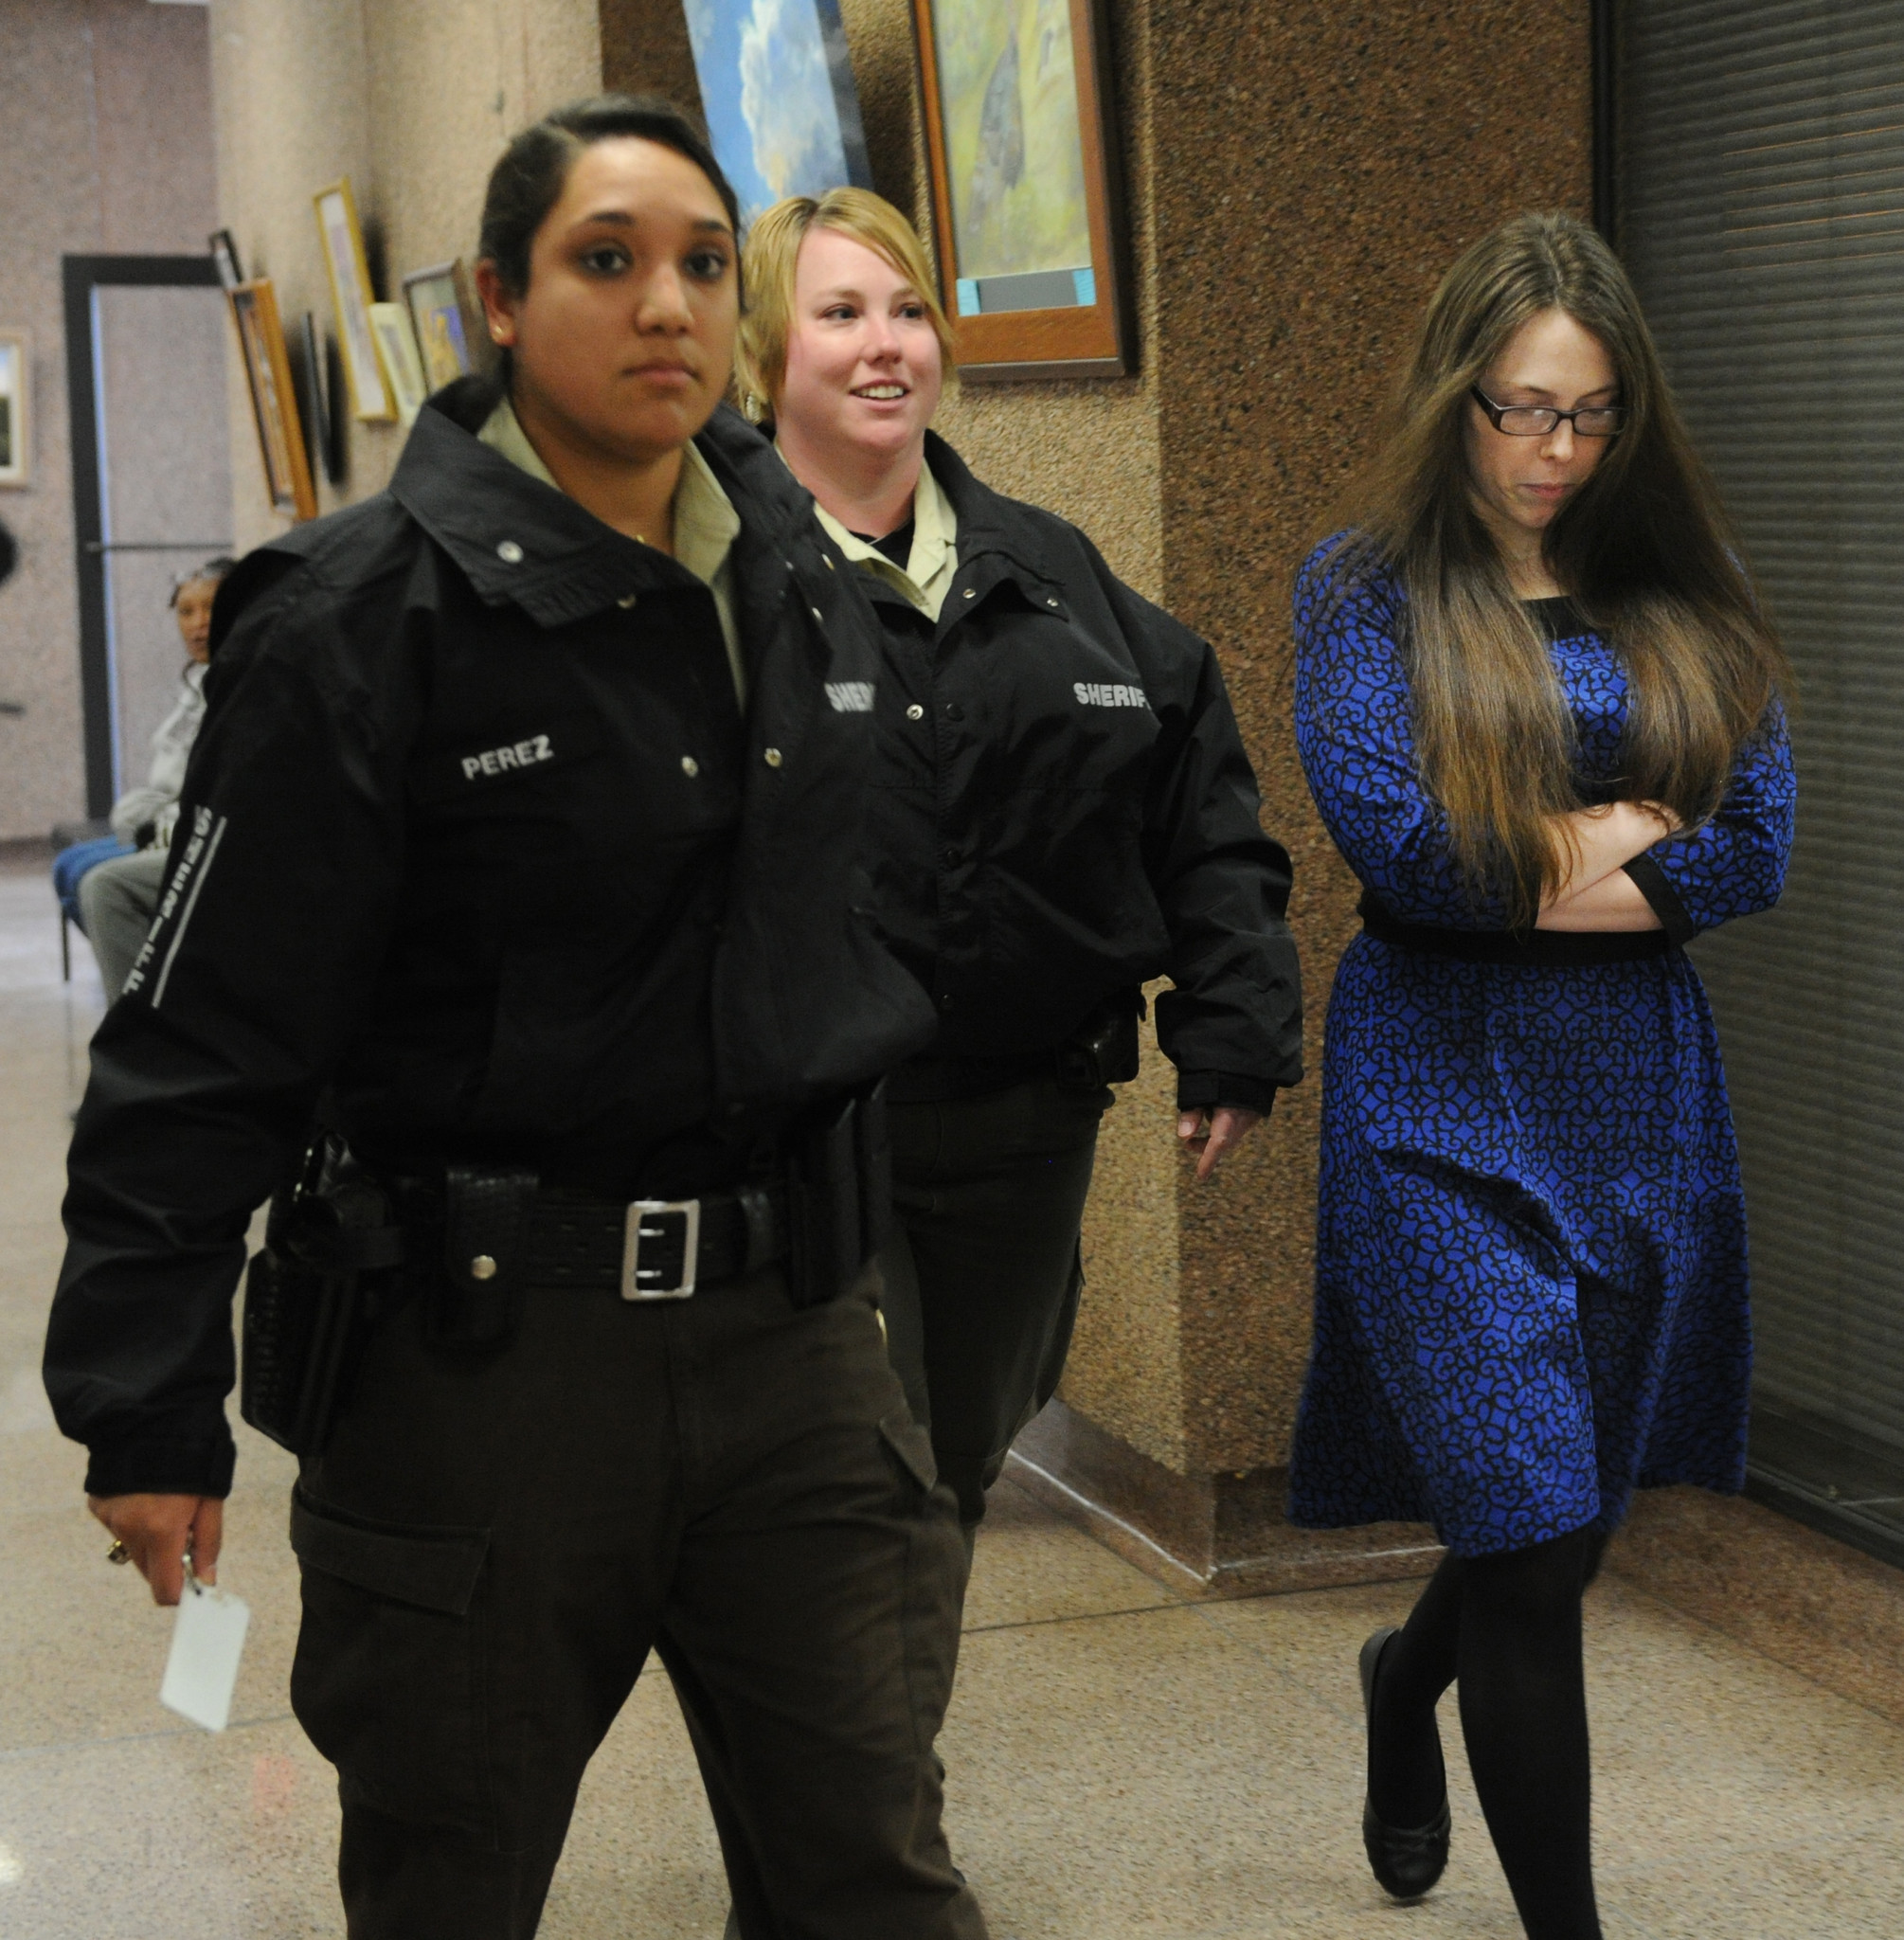 Tiffany Klapheke, right, at the Taylor County Courthouse in Abilene, Texas.